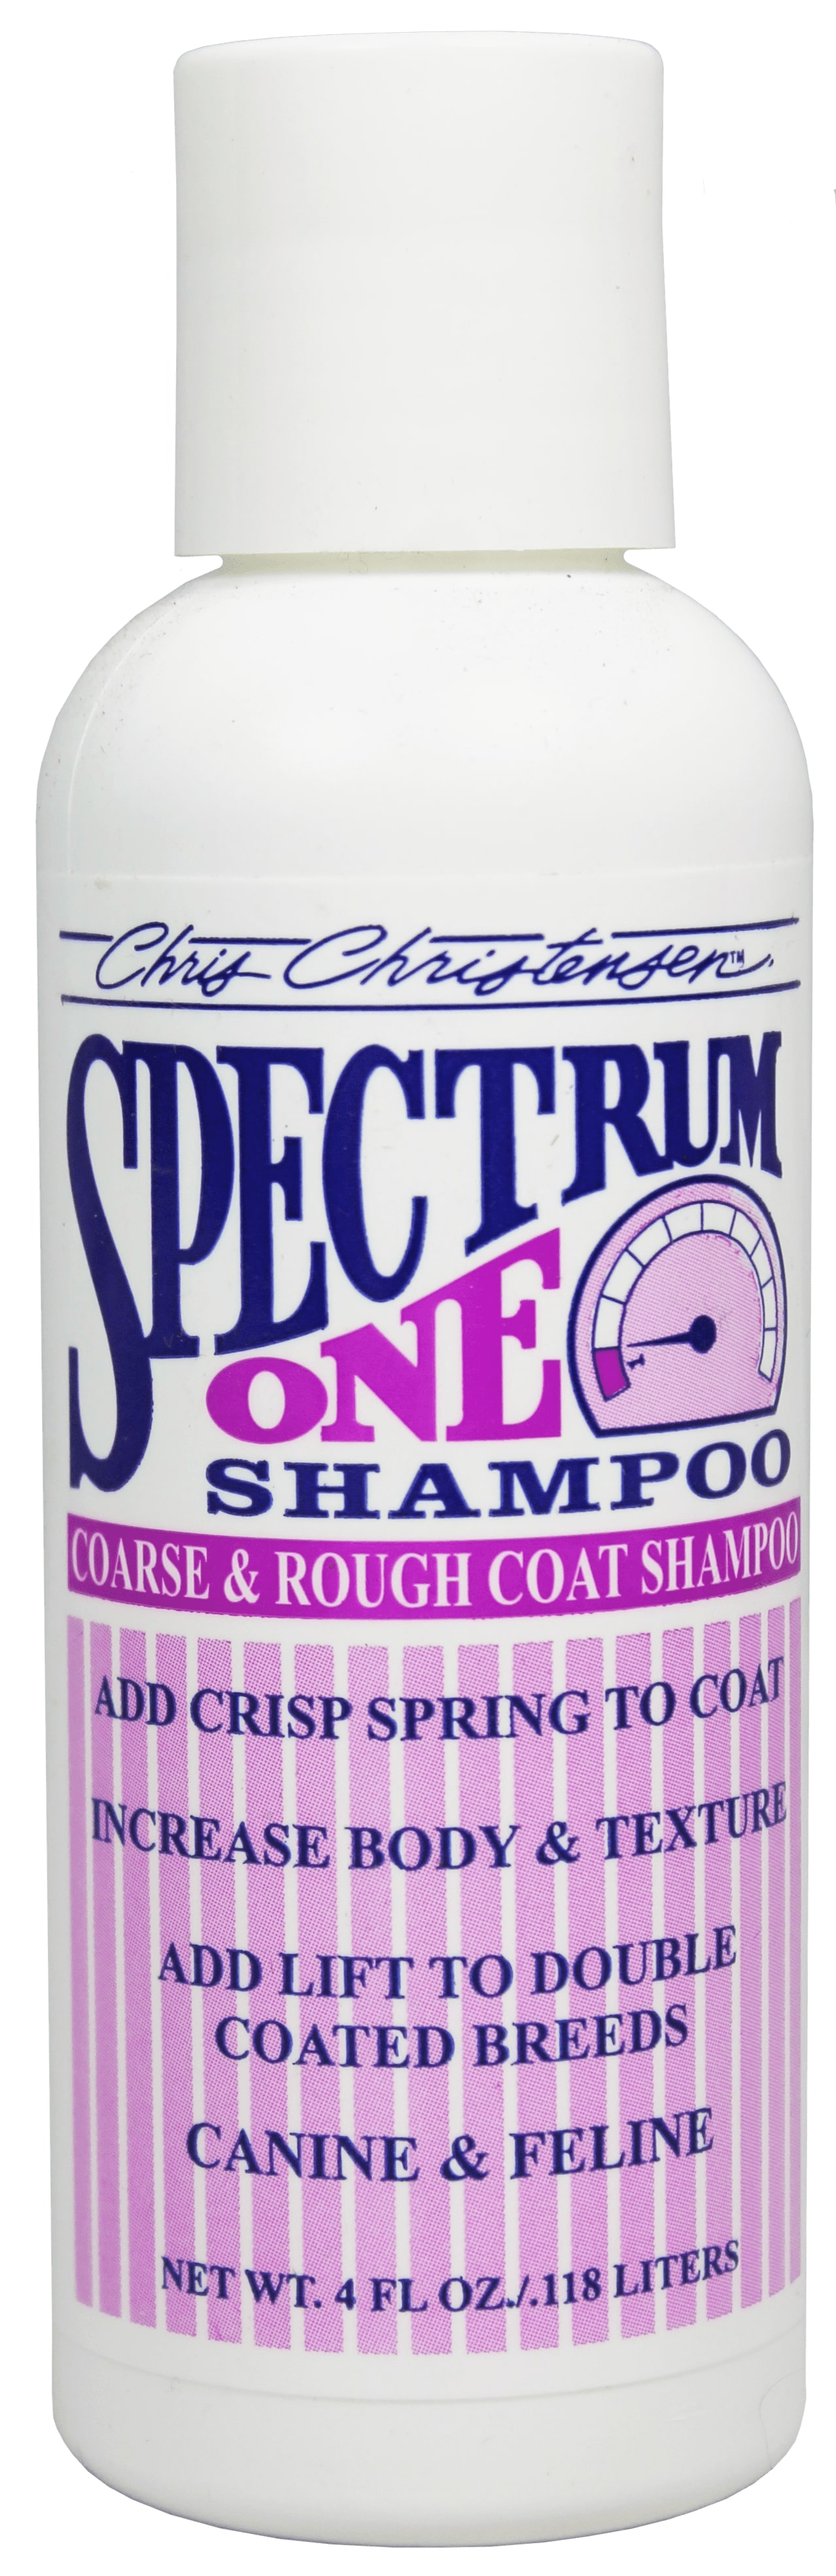 CC - Spectrum One Coarse & Rough Coat Shampoo